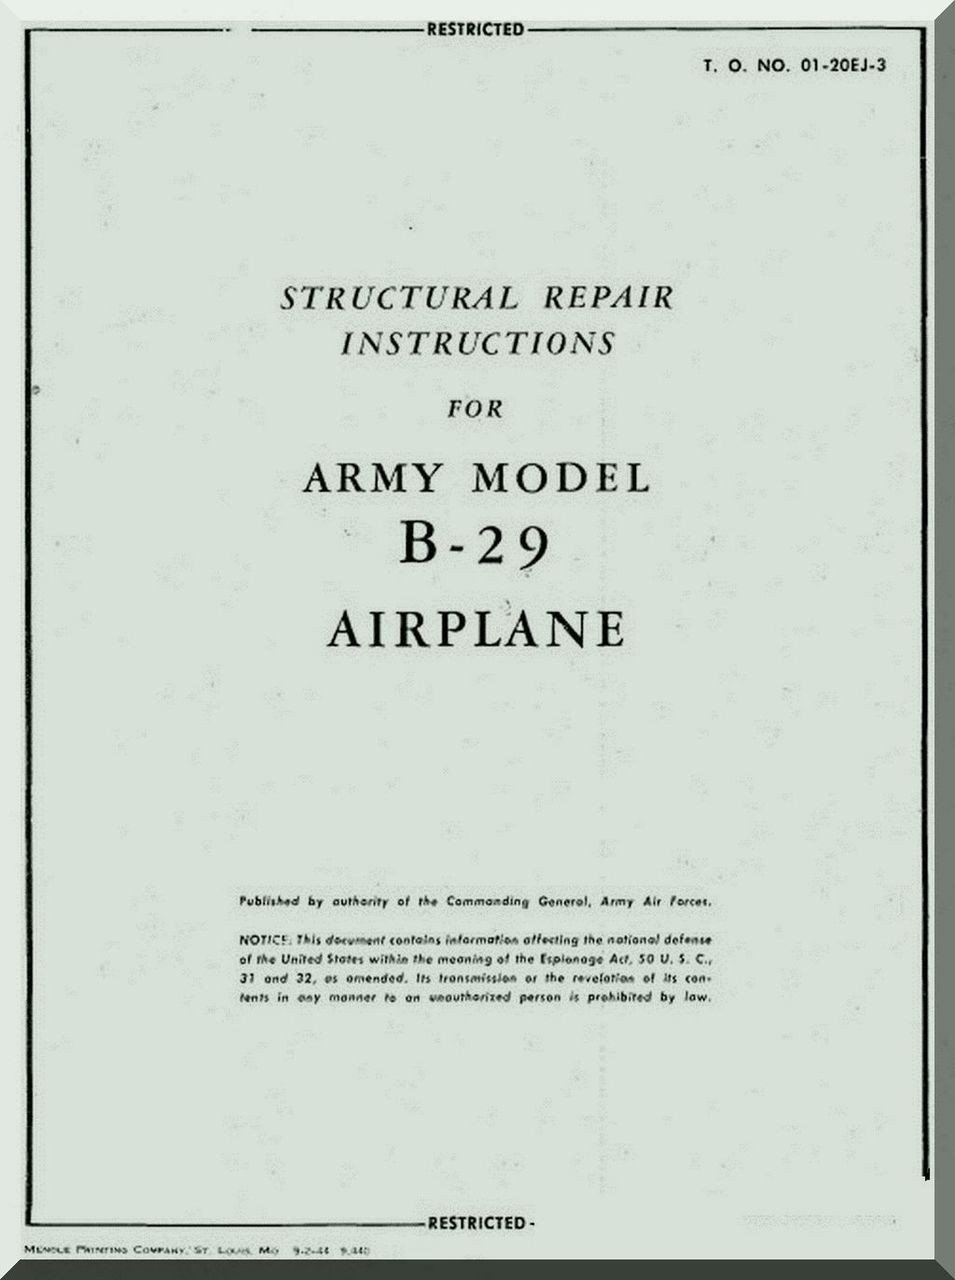 boeing b 29 aircraft structural repair manual 01 20ej 3 aircraft rh aircraft reports com